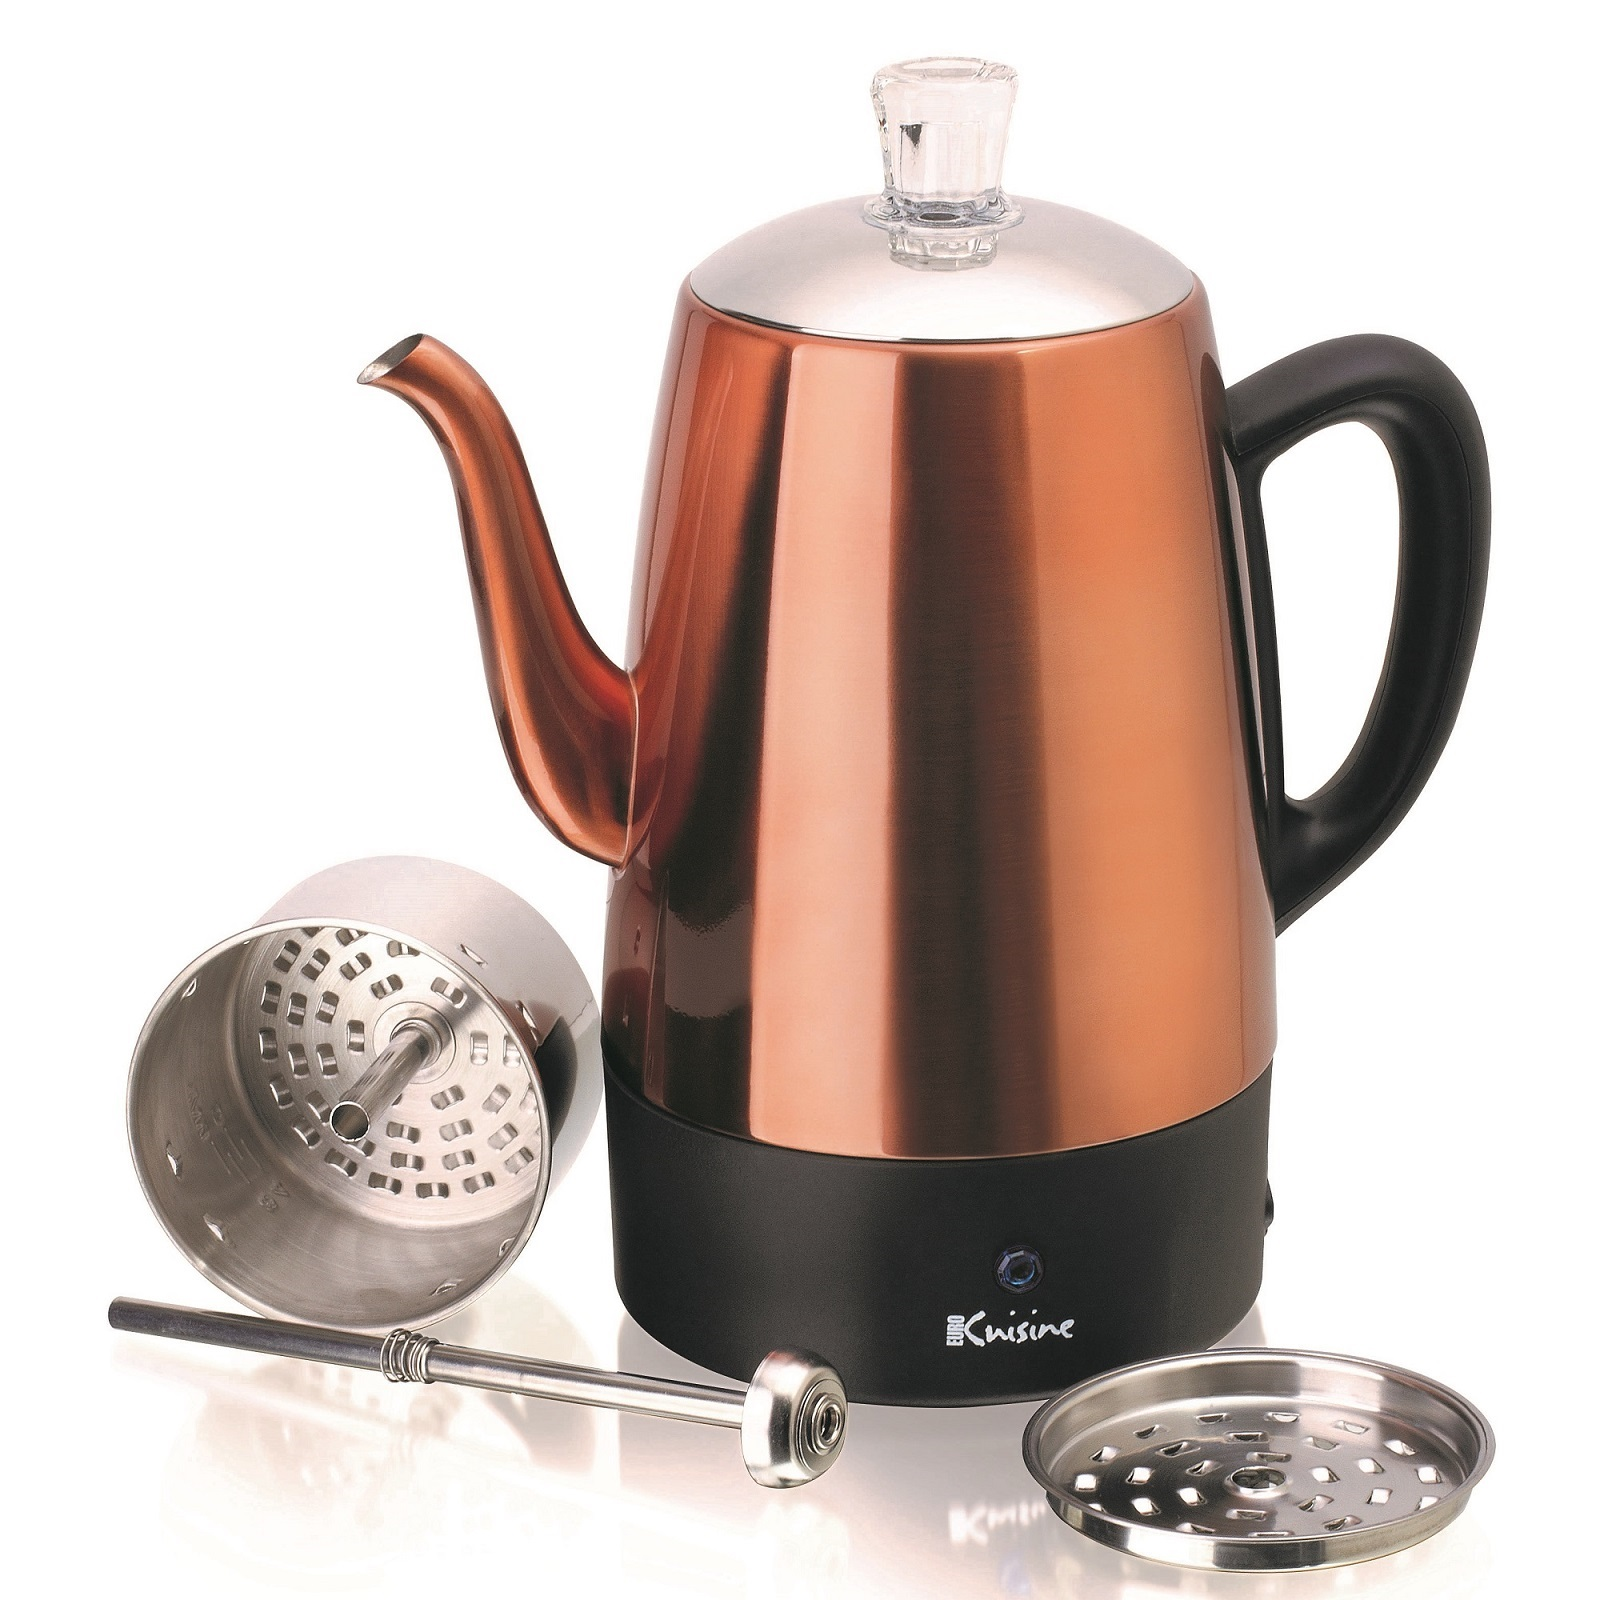 Euro Cuisine Euro Cuisine Per08 Stainless Steel Electric Coffee